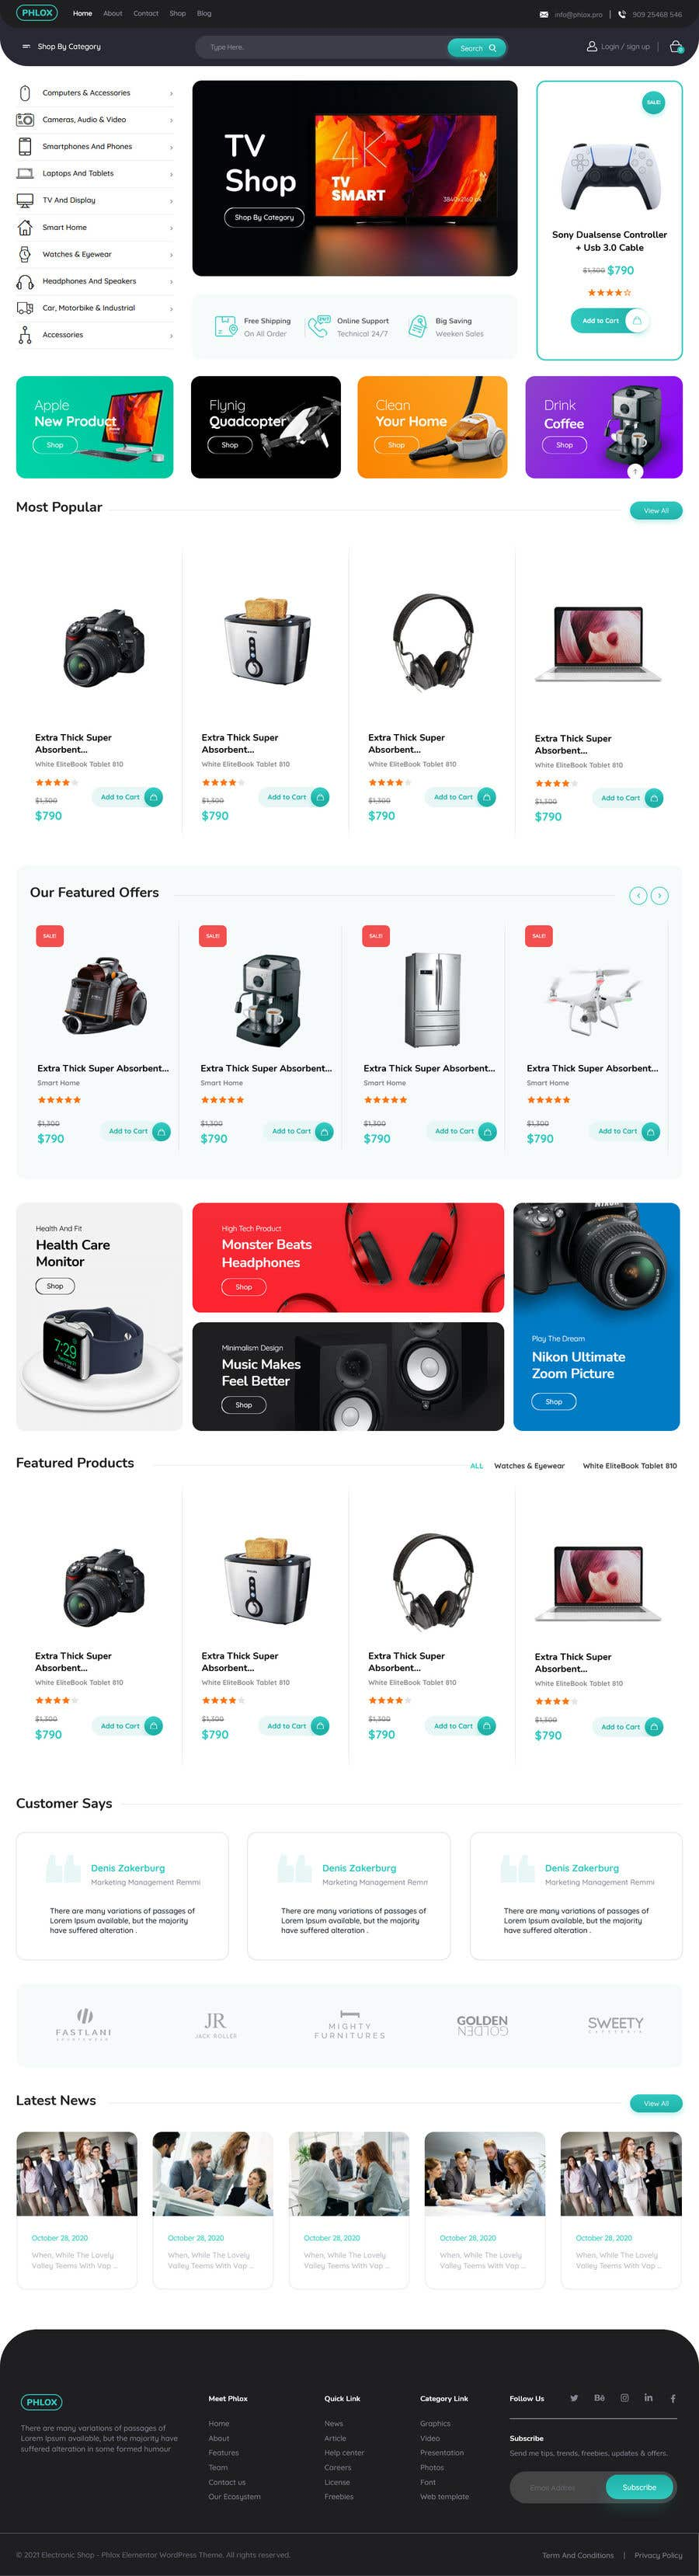 Bài tham dự cuộc thi #                                        11                                      cho                                         I need a Landing Page Website for Small Business Stores